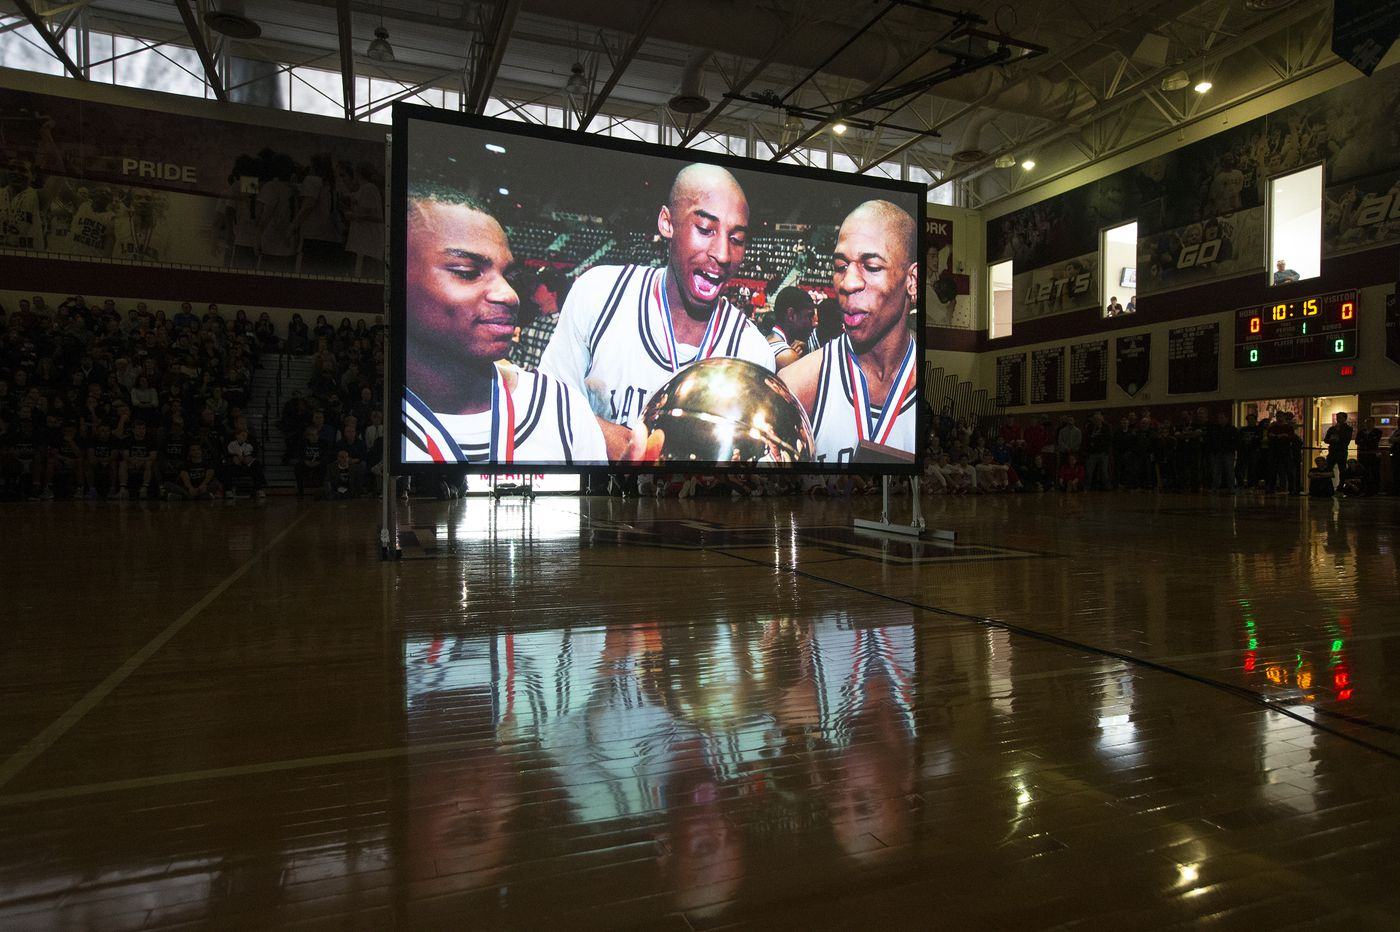 Lower Merion High School Honors Kobe Bryant with Video Tribute at Game